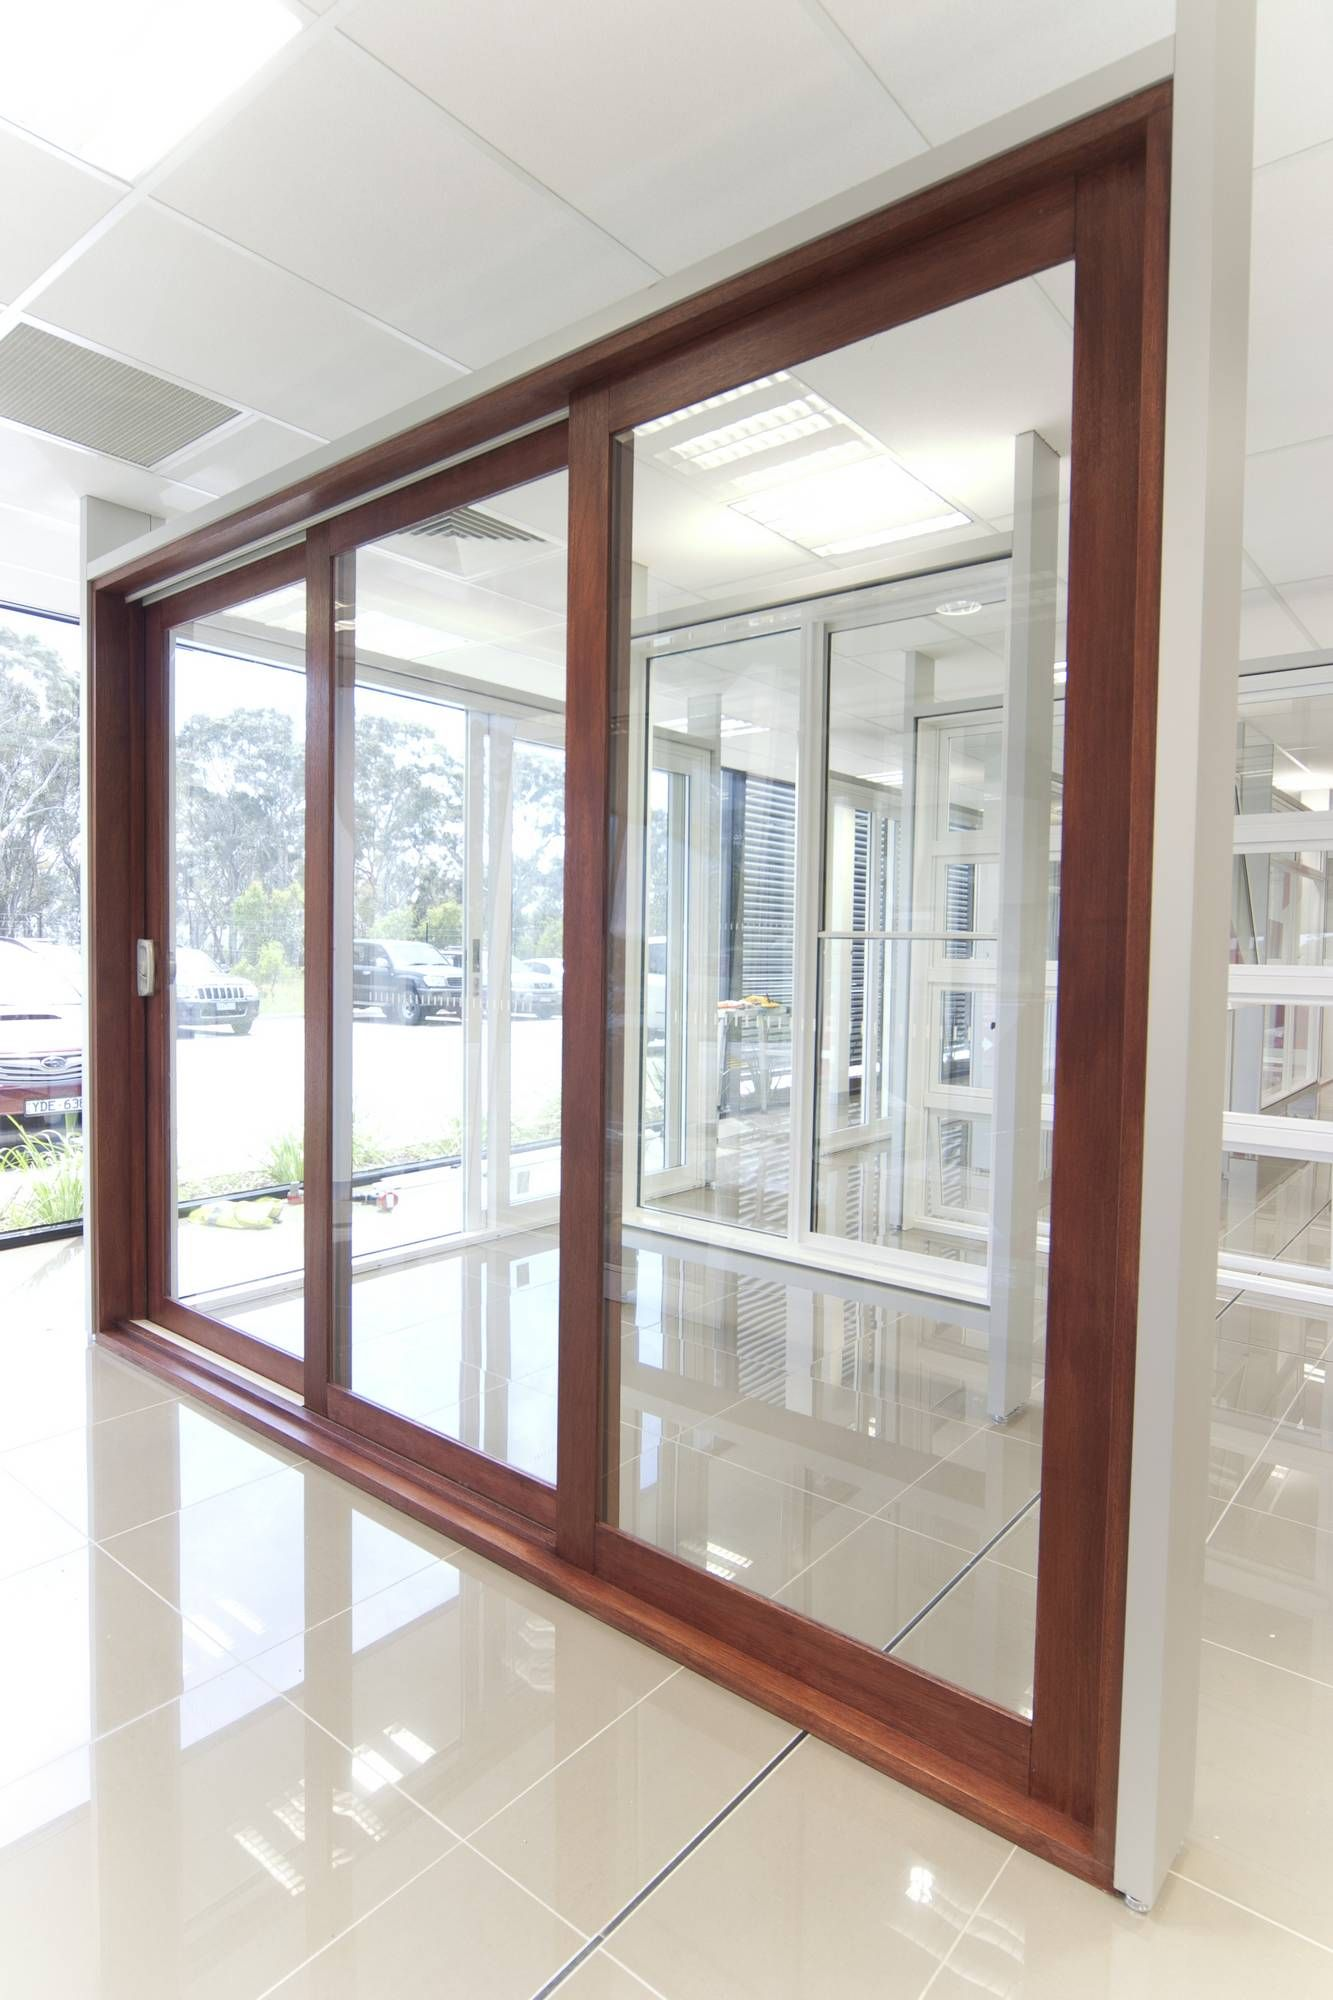 Timber Sliding Doors | Au0026L Windows and Doors - Servicing Melbourne Geelong Dandenong Newcastle u0026 Gold Coast. Servicing Albury Shepparton u0026 Regional ... & Timber Sliding Doors | Au0026L Windows and Doors - Servicing Melbourne ...